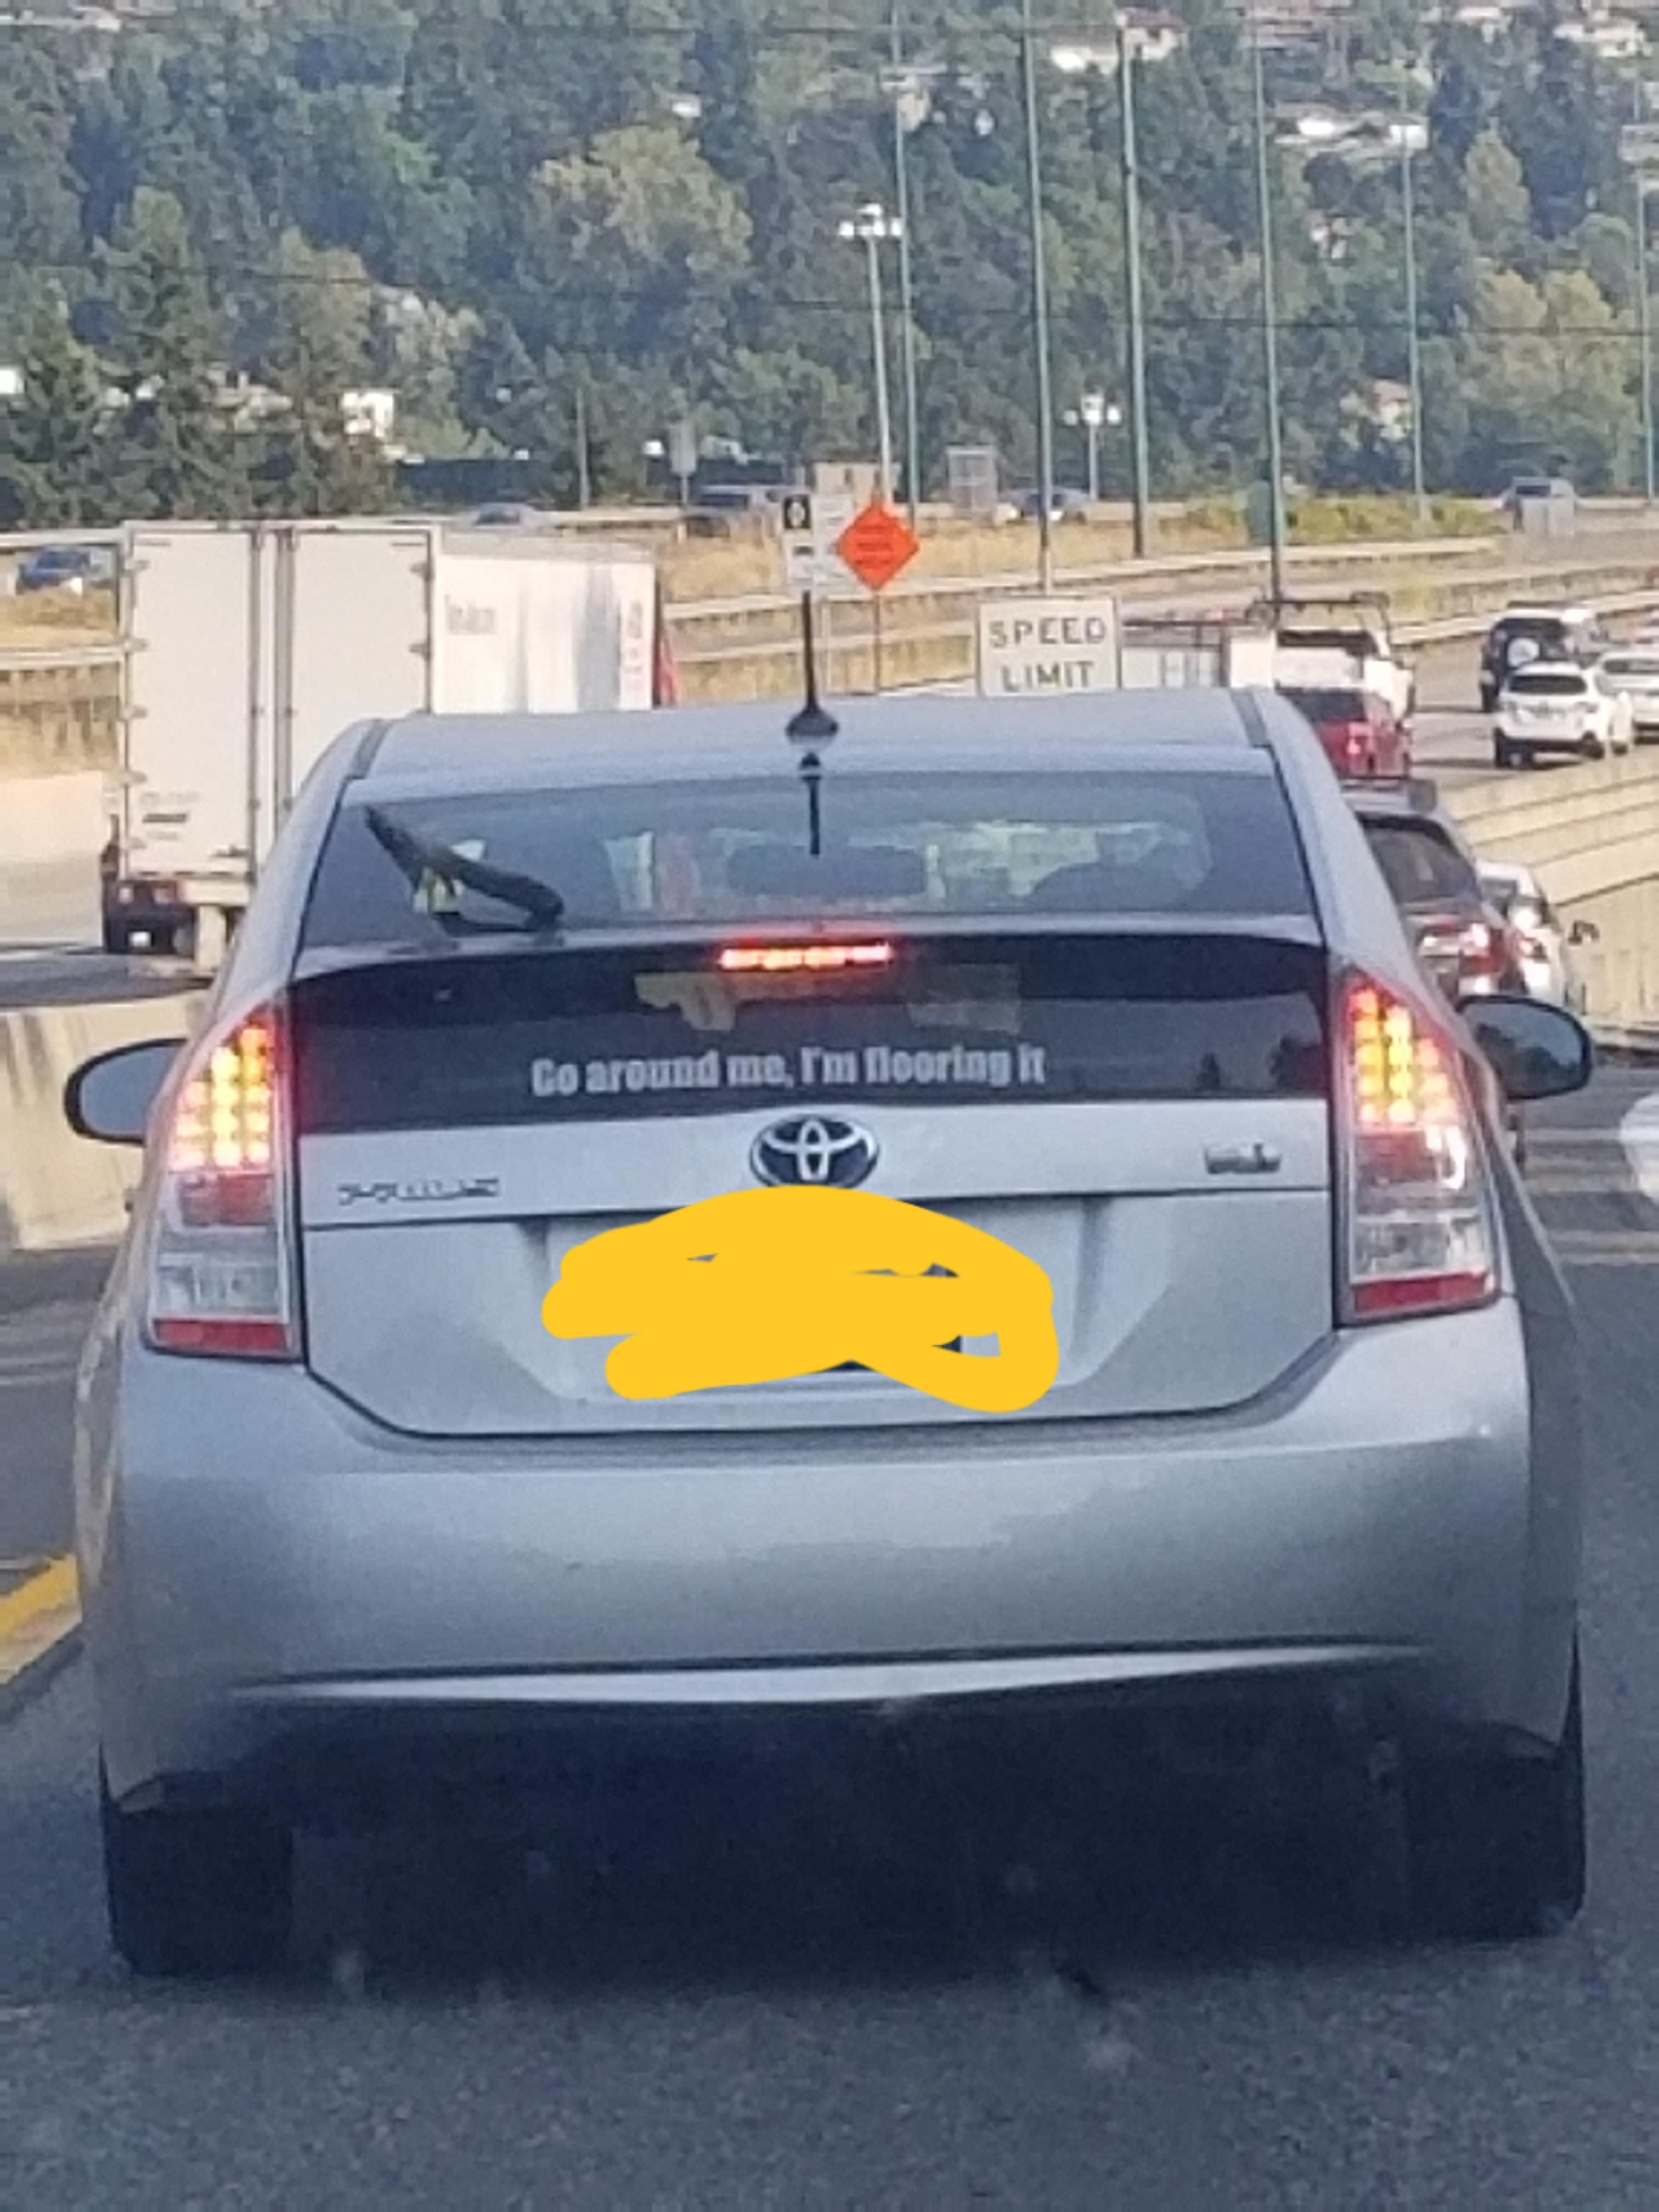 Only Prius driver I respect.